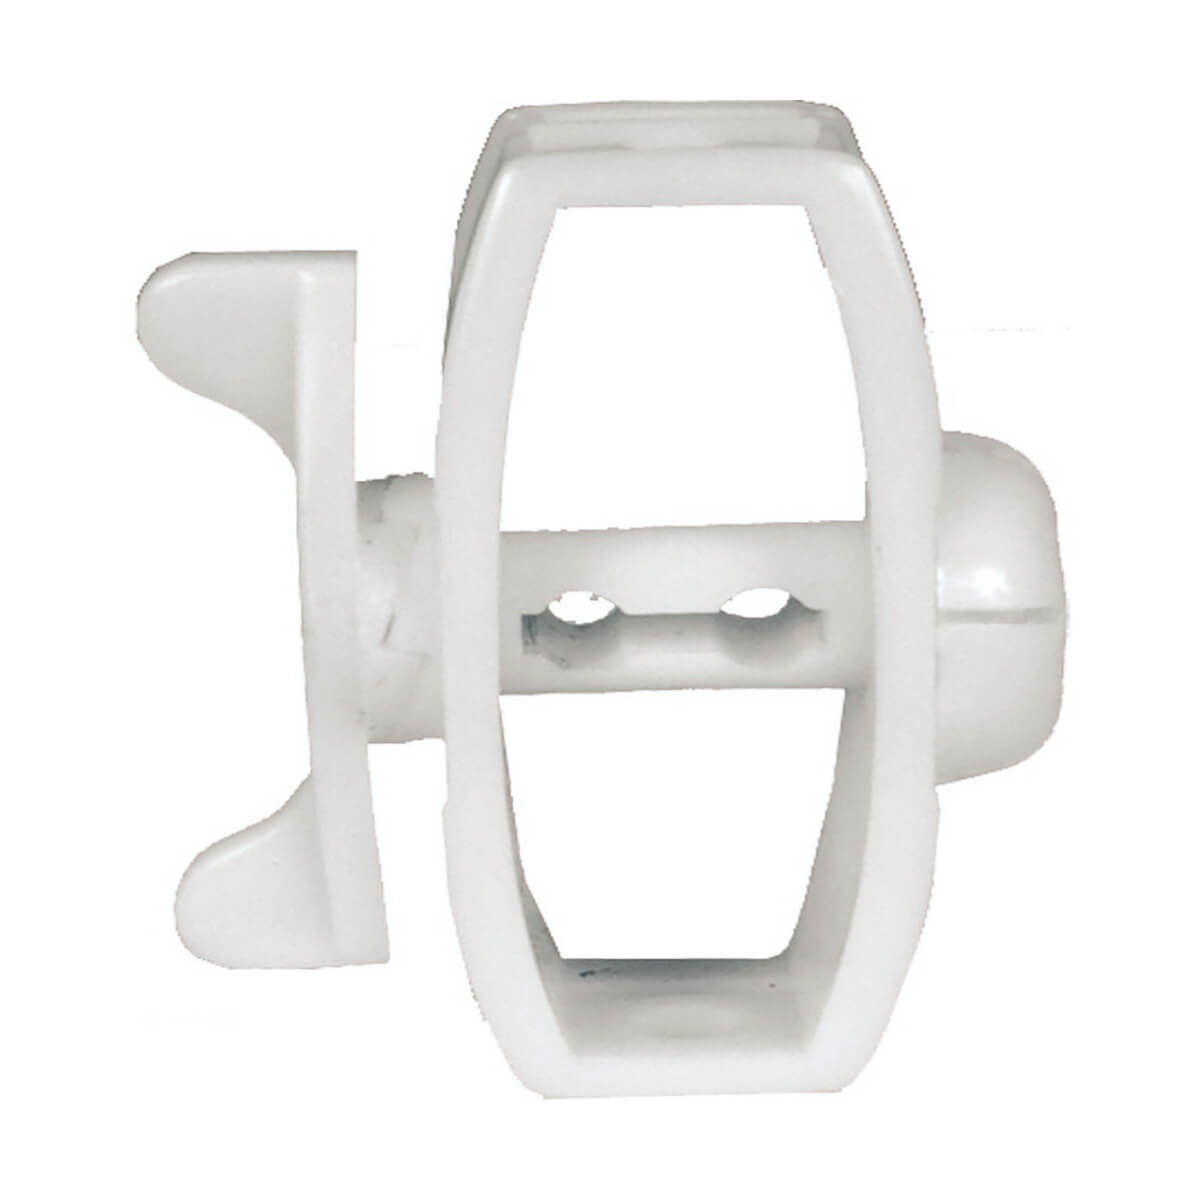 Polywire and Tape Tensioner - A-5 - 5 pack